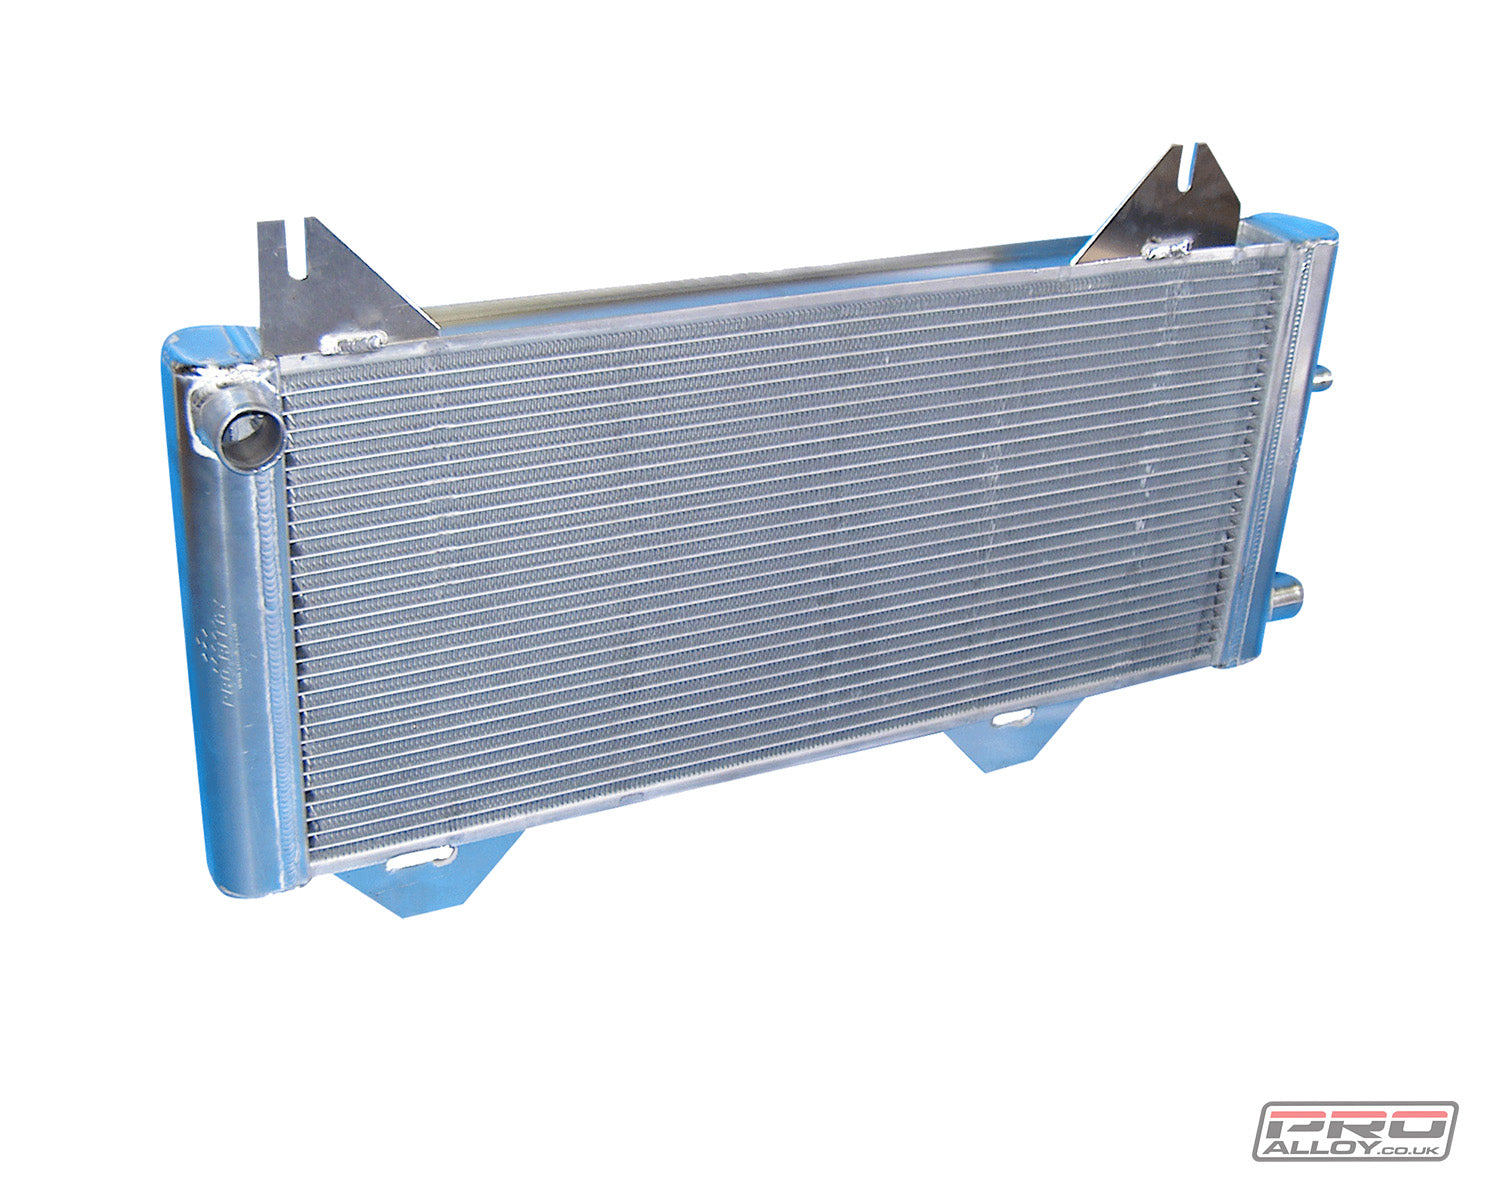 Escort RS Turbo S1 Radiator